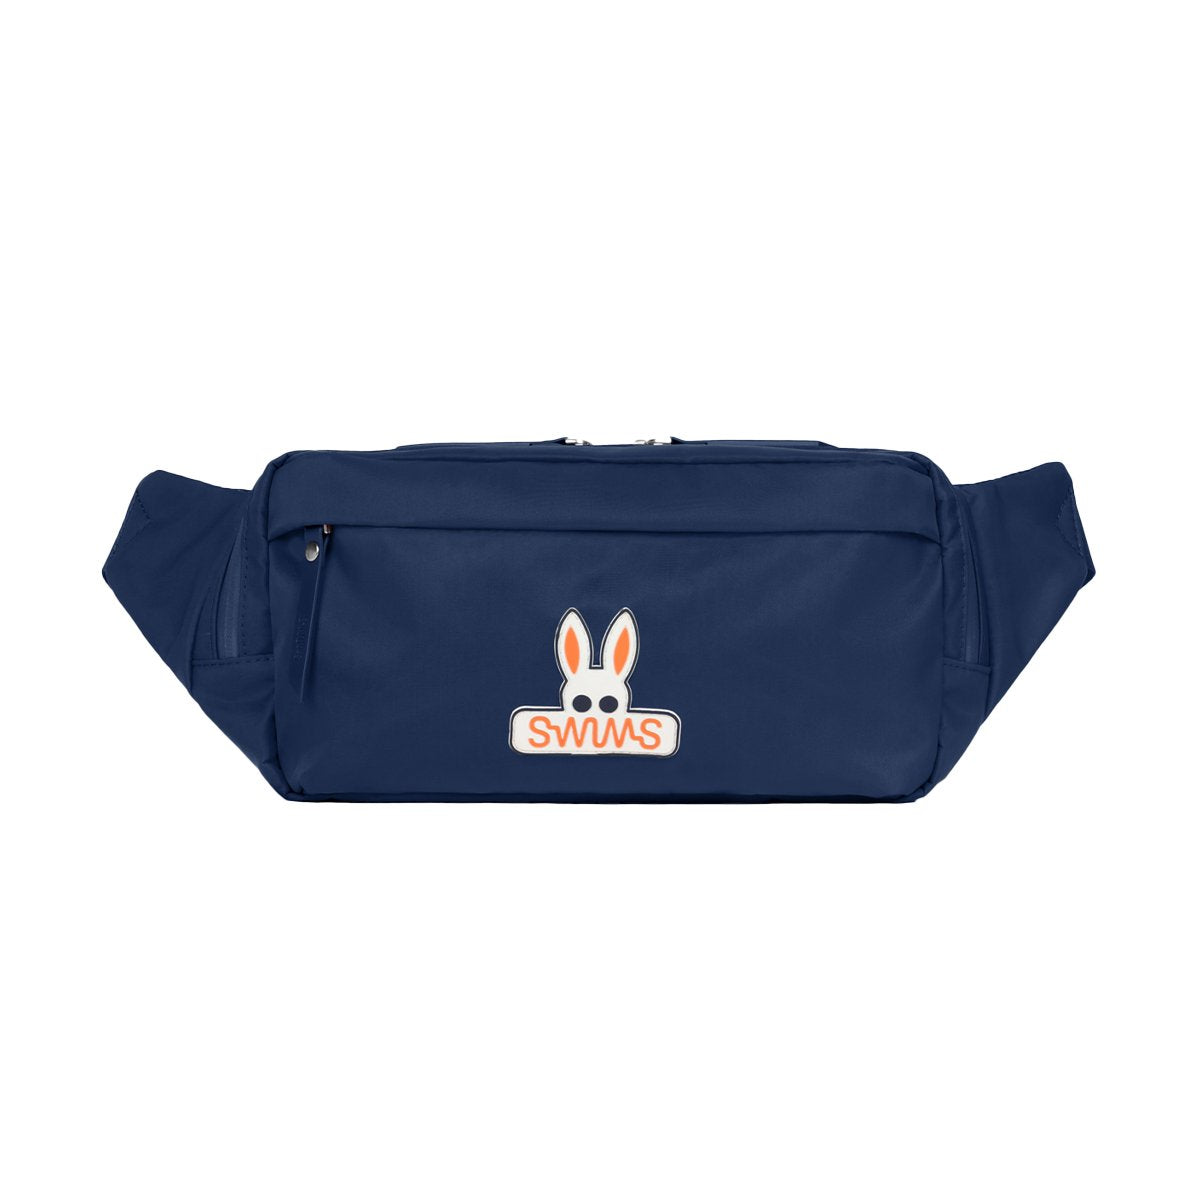 Psycho Bunny x SWIMS Belt Bag - background::white,variant::navy